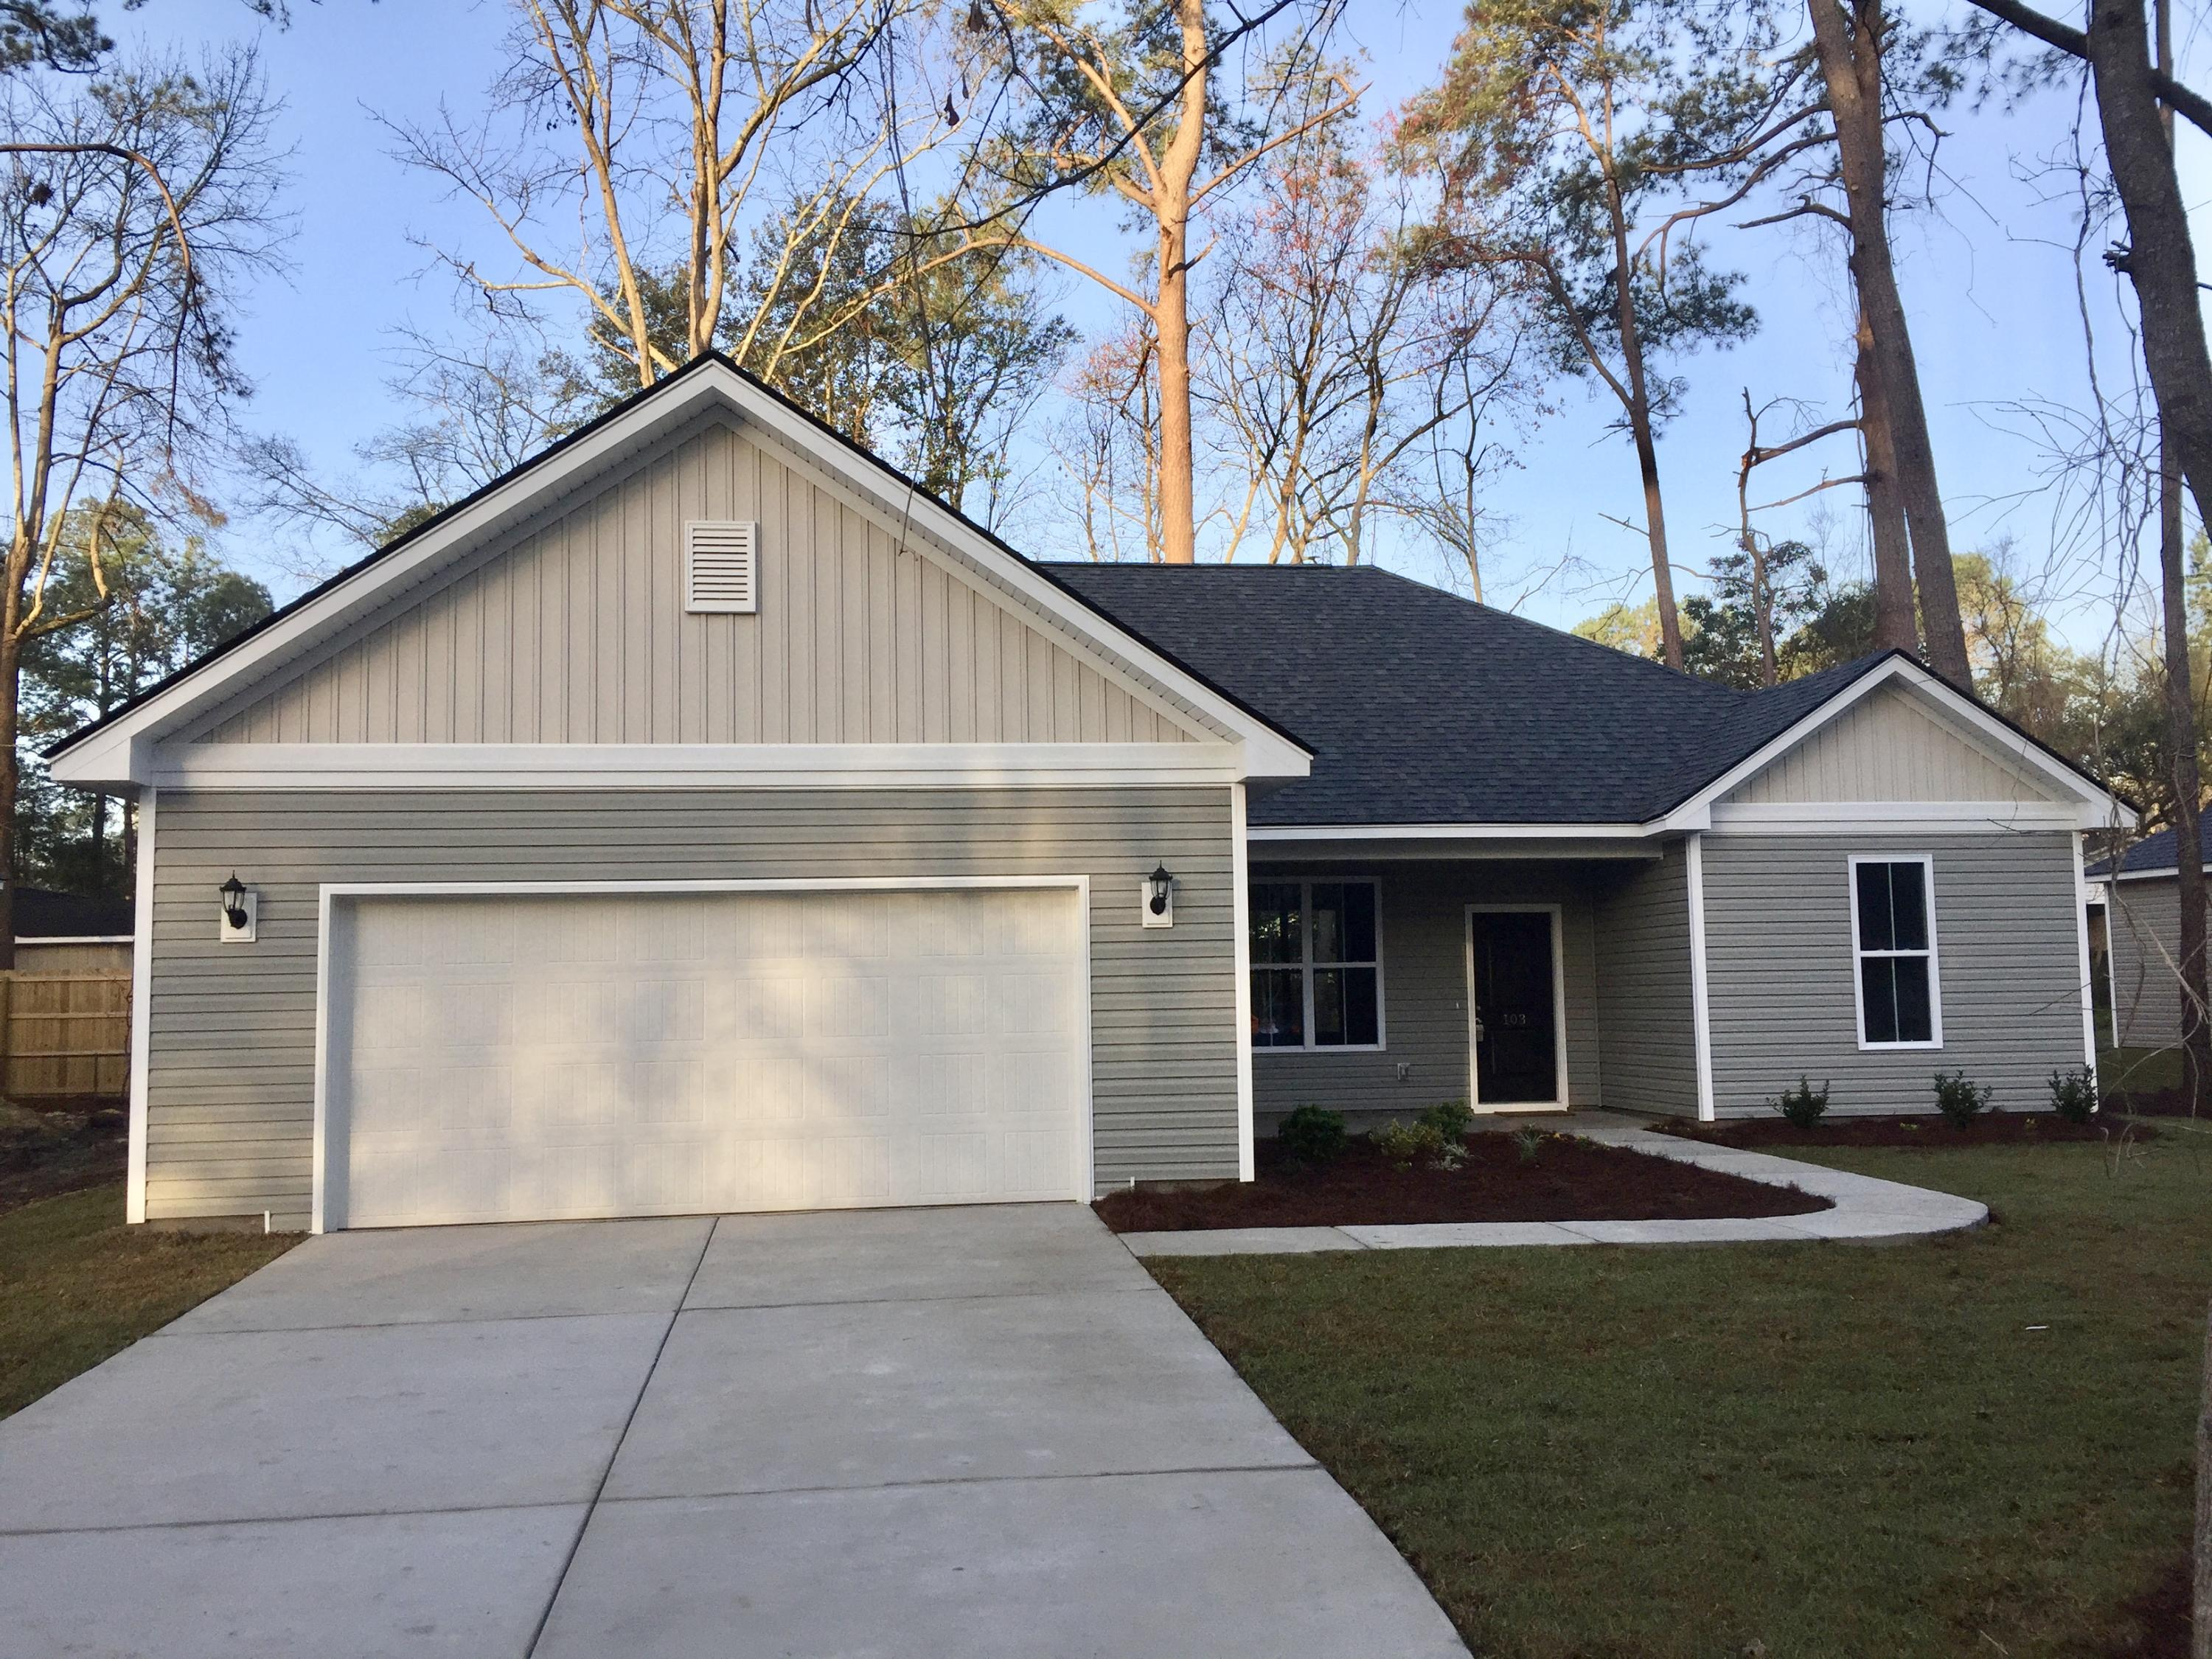 Summerville Heights Homes For Sale - 103 Mary, Summerville, SC - 29